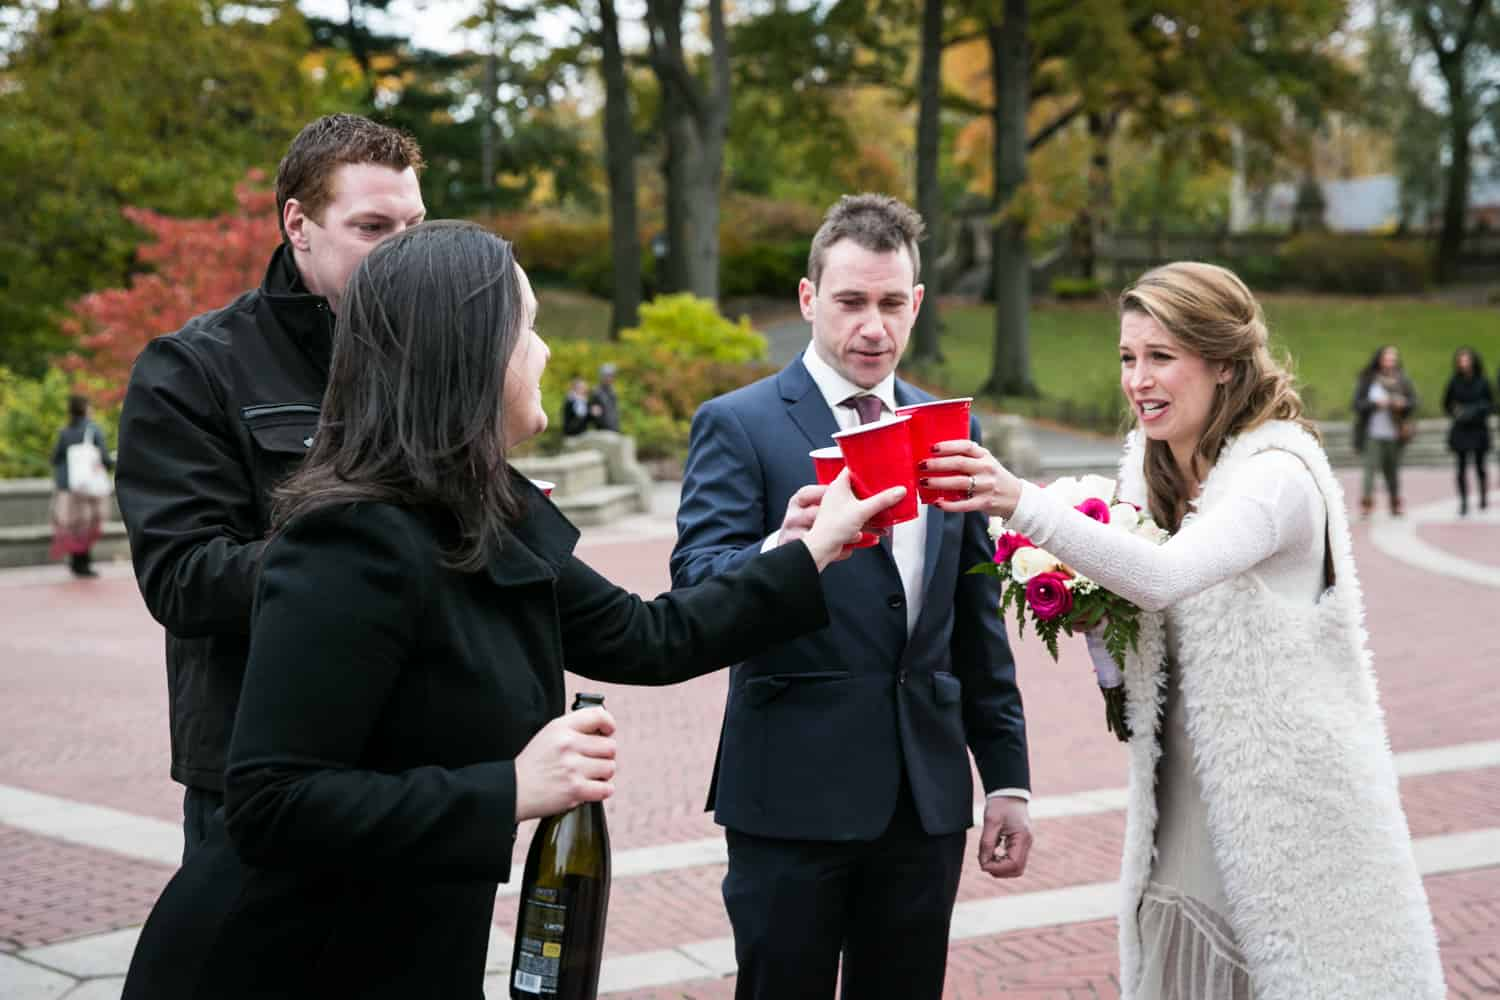 Bride, groom, and guests toasting with red plastic cups